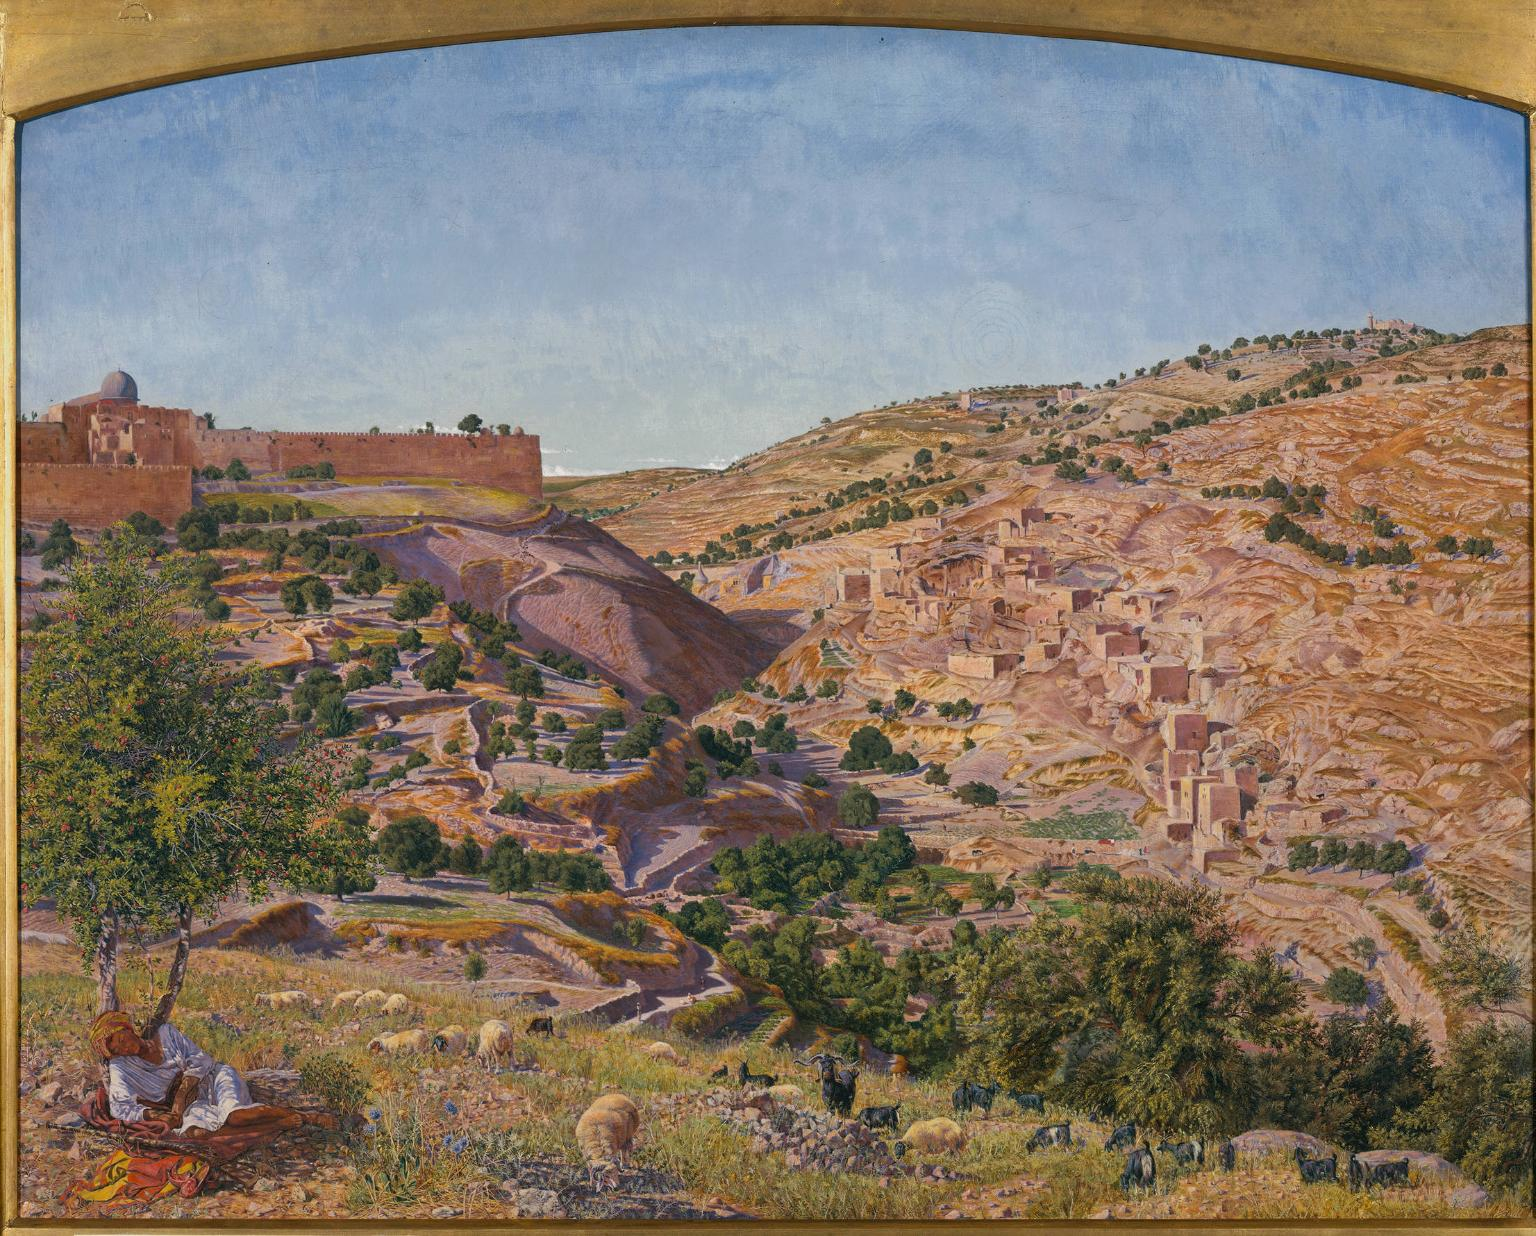 Figure 3. Thomas Seddon, Jerusalem and the Valley of Jehoshaphat from the Hill of Evil Counsel, 1854–5, oil on canvas, 67 x 83 cm, Tate Britain, London.